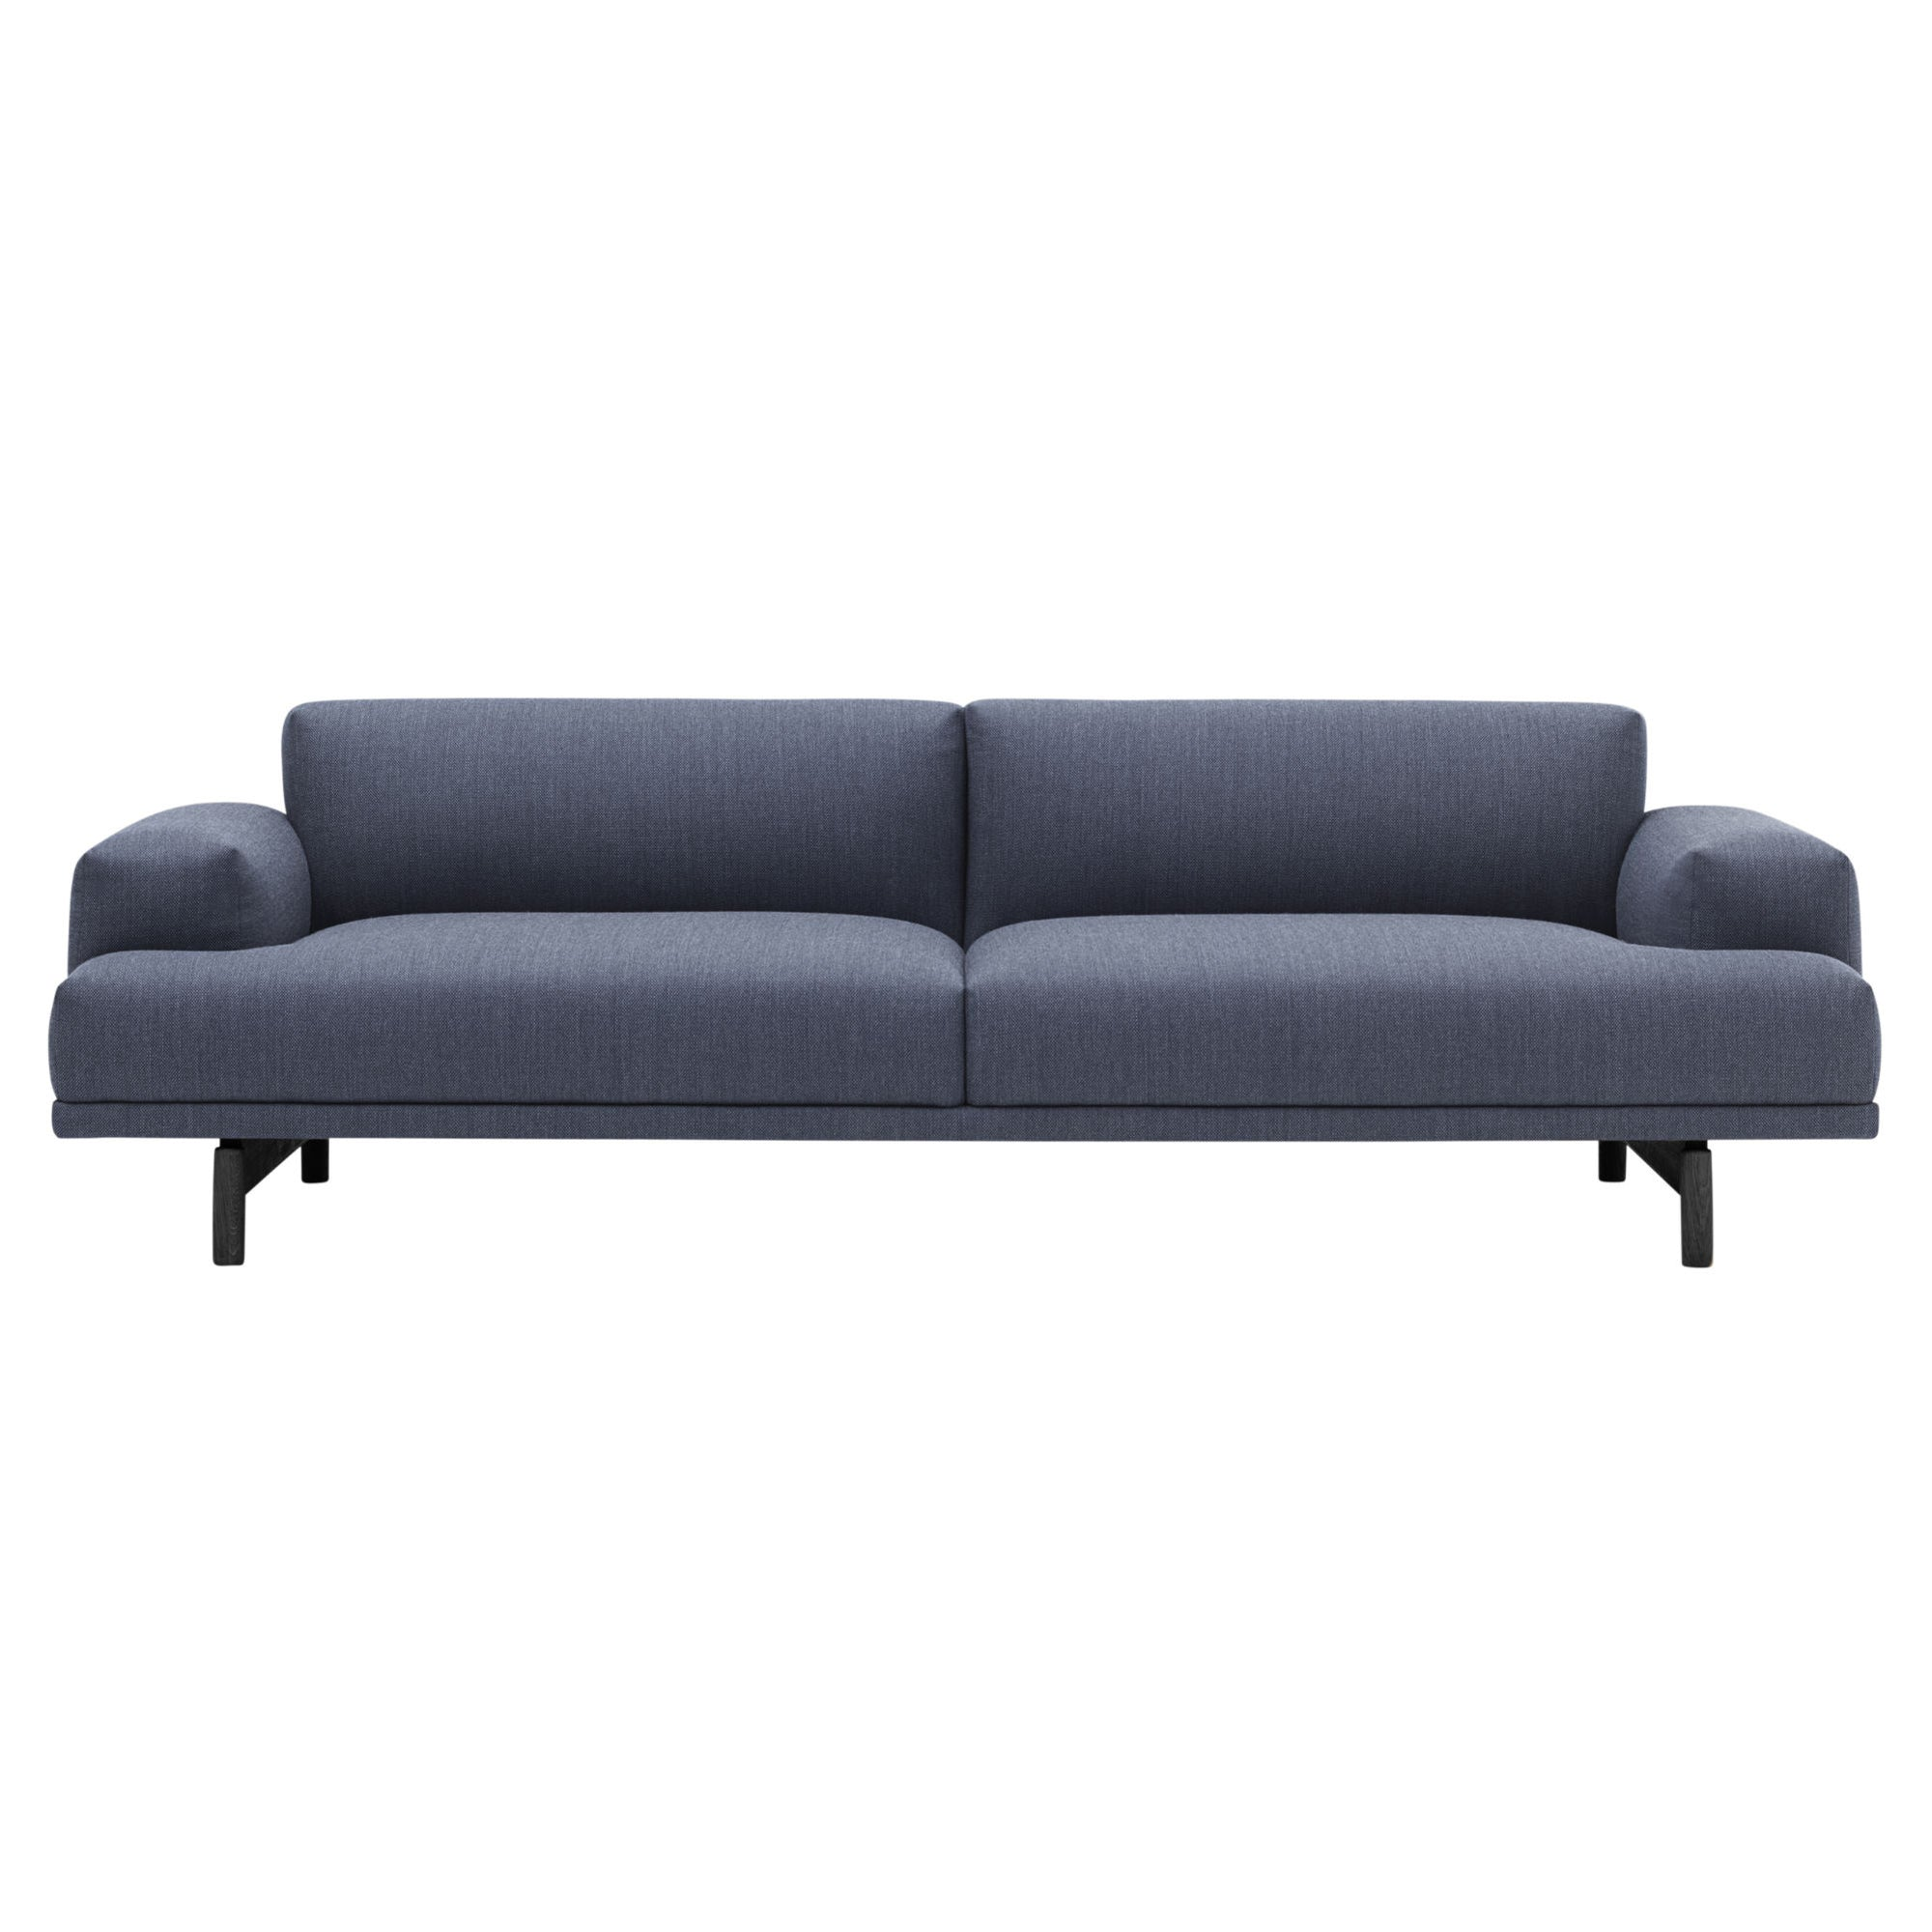 Muuto Compose sofa, 3-seater, fiord 771, black oak legs